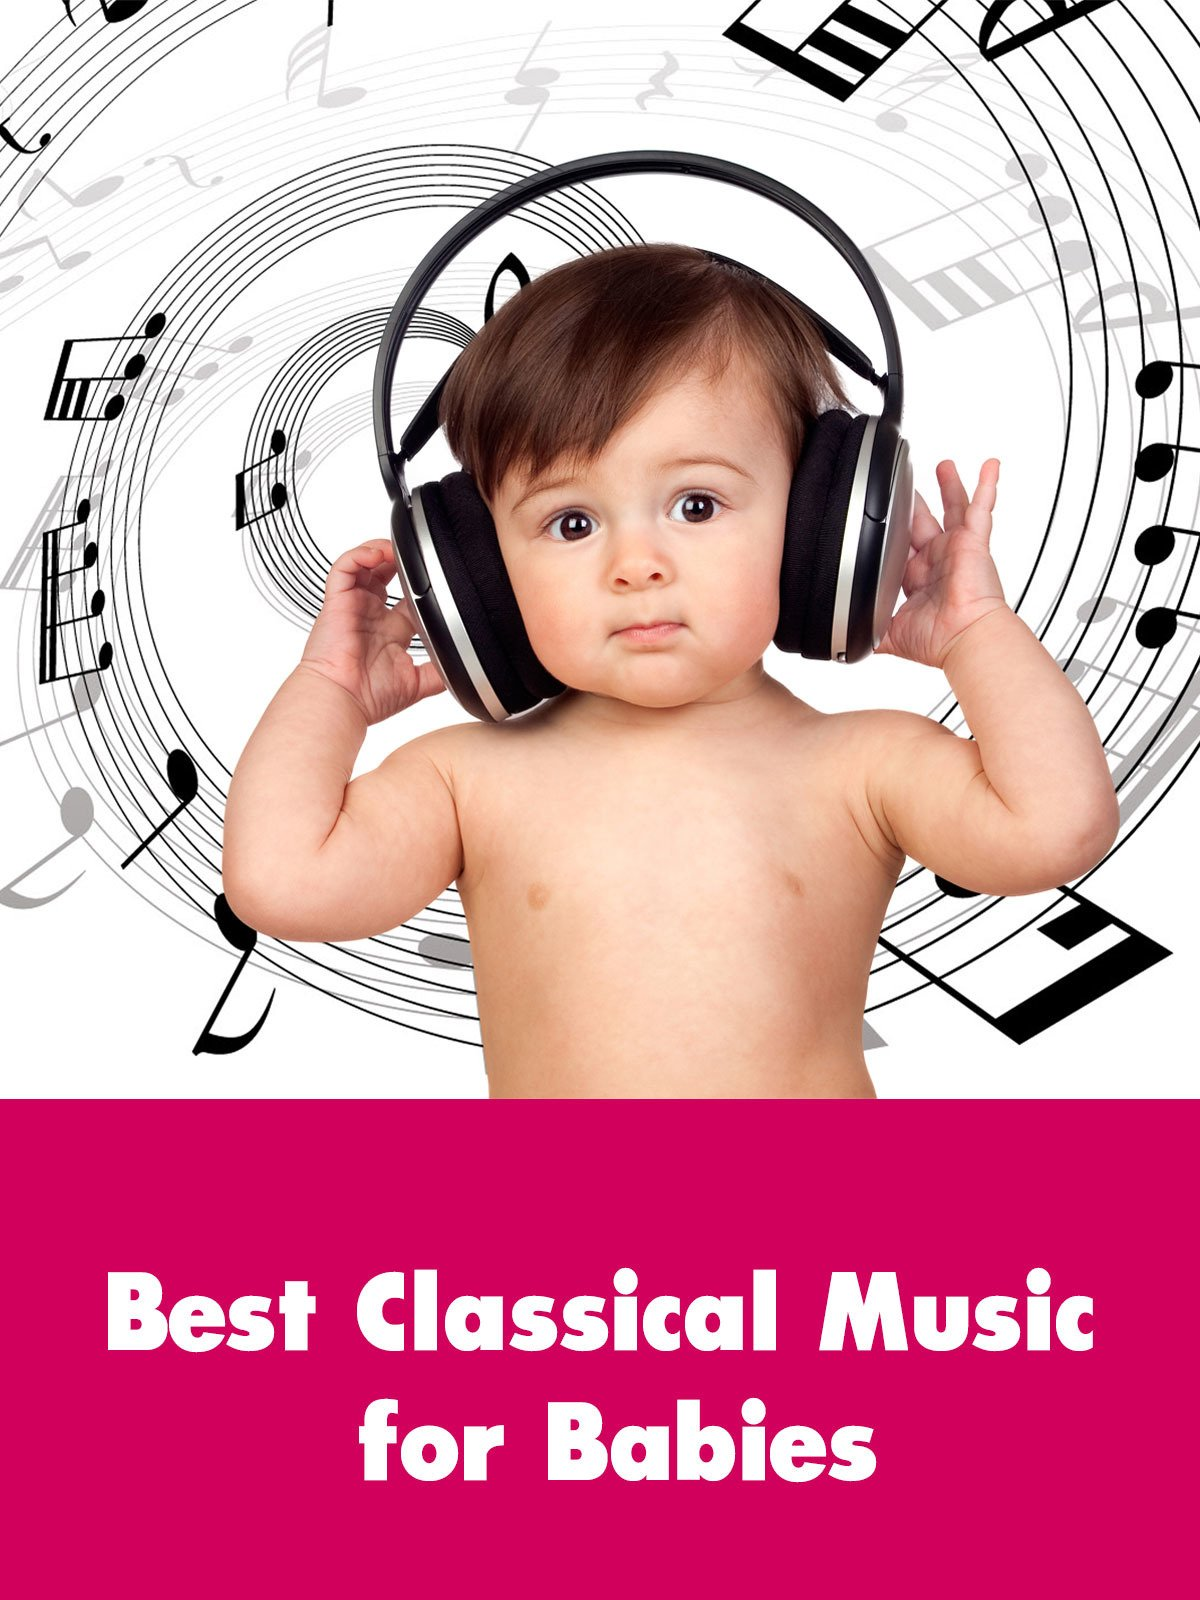 Best Classical Music for Babies